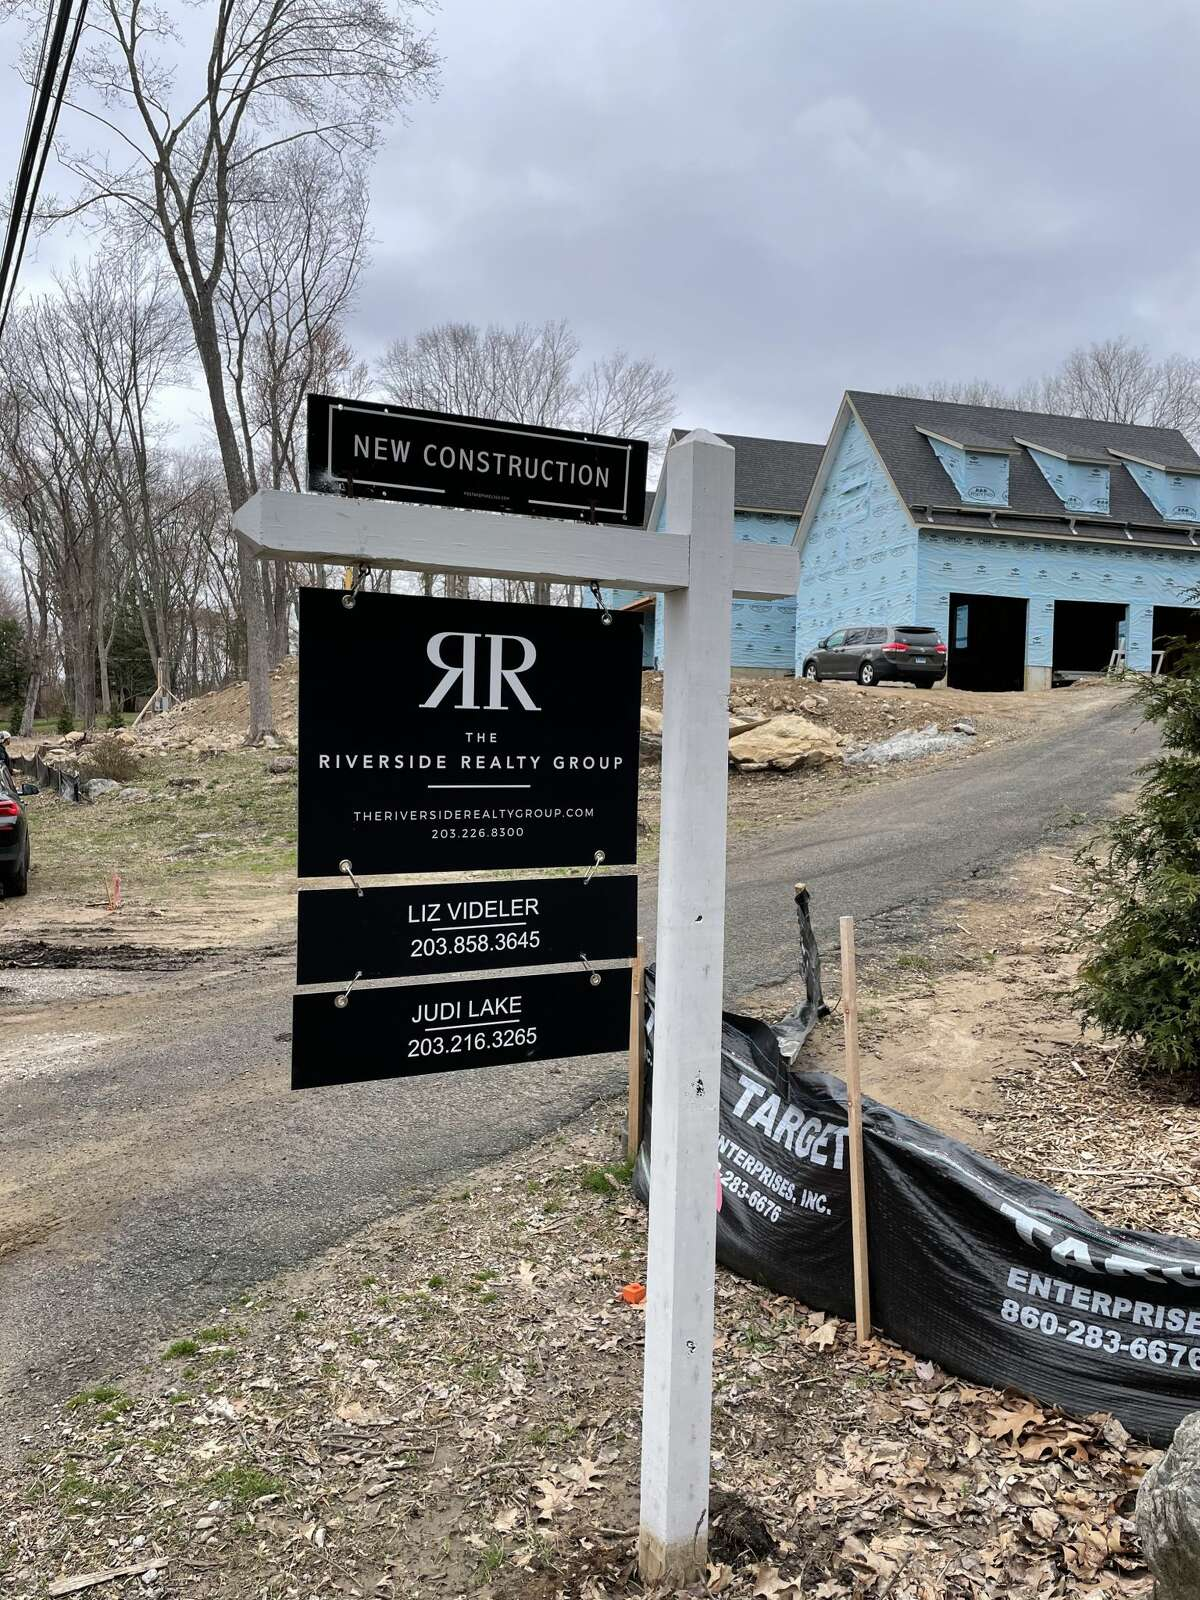 The exterior of the home at 15 Salem Road in Weston, Conn. that is currently under construction and being sold by Judi Lake and Liz Videler, part of the Riverside Realty Group in Westport, Conn.